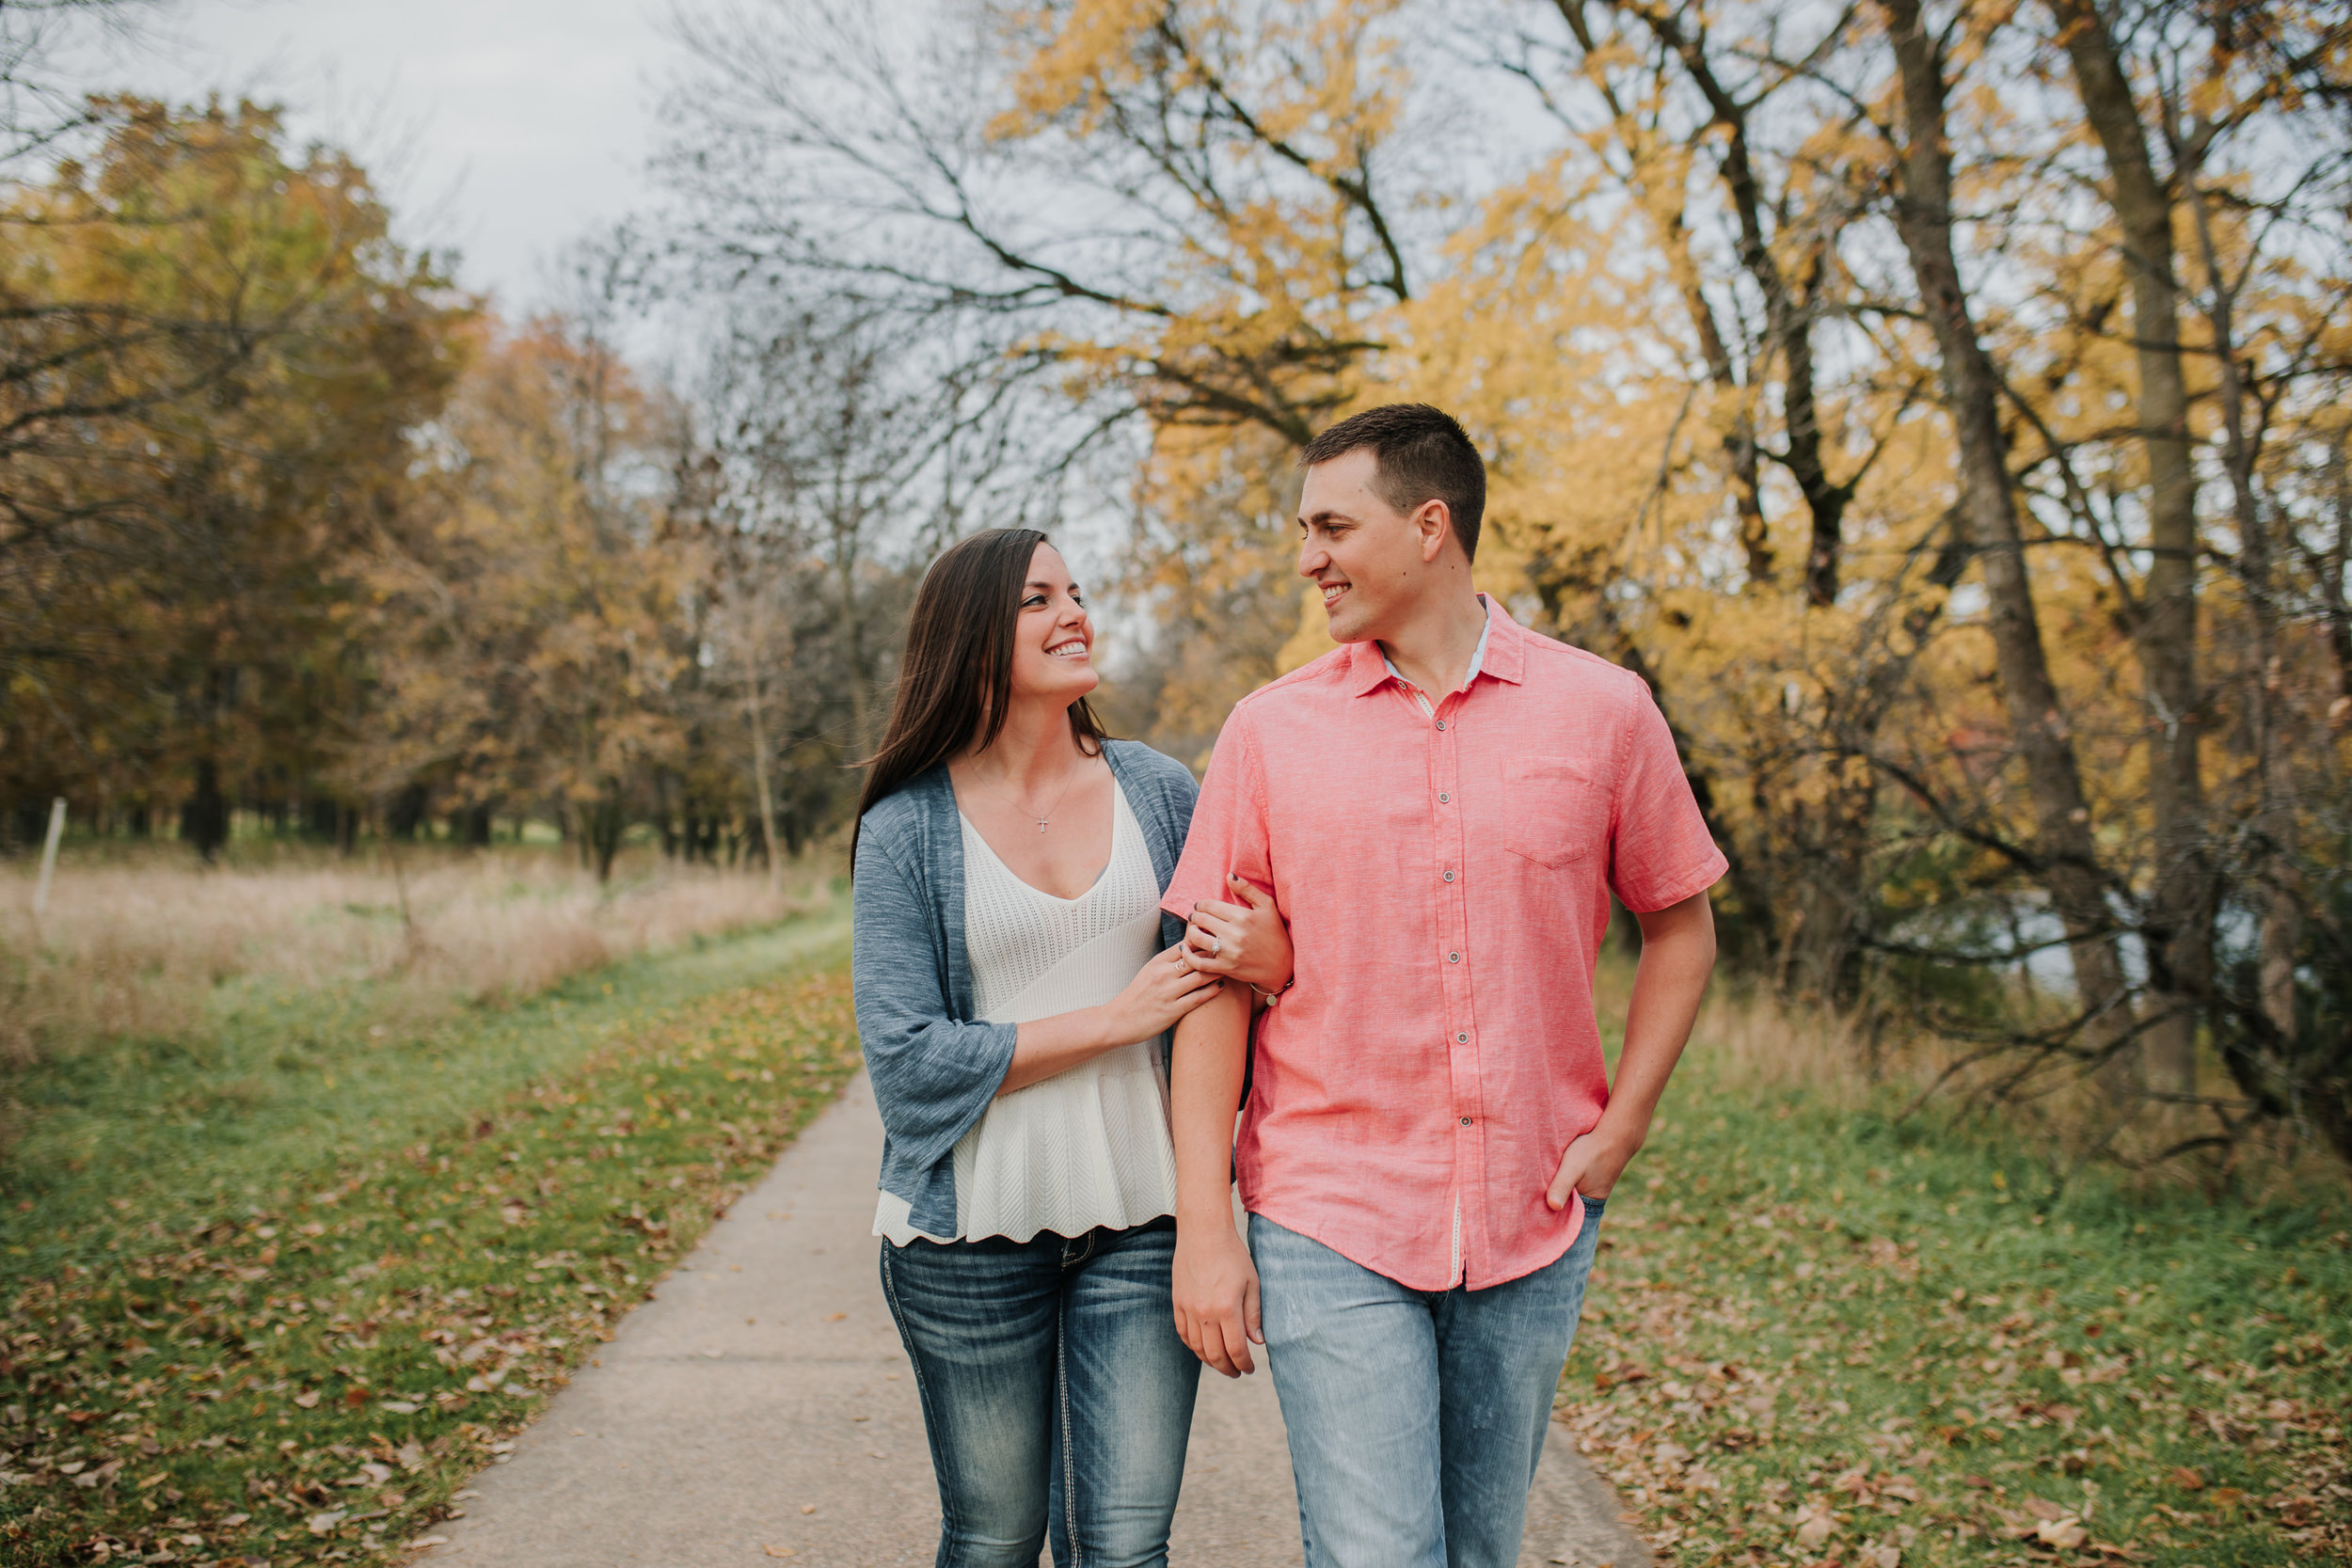 Hannah & Brett - Engaged - Nathaniel Jensen Photography - Omaha Nebraska Wedding Photograper - Omaha Nebraska Engagement Session - Chalco Hills Engagement Session-40.jpg